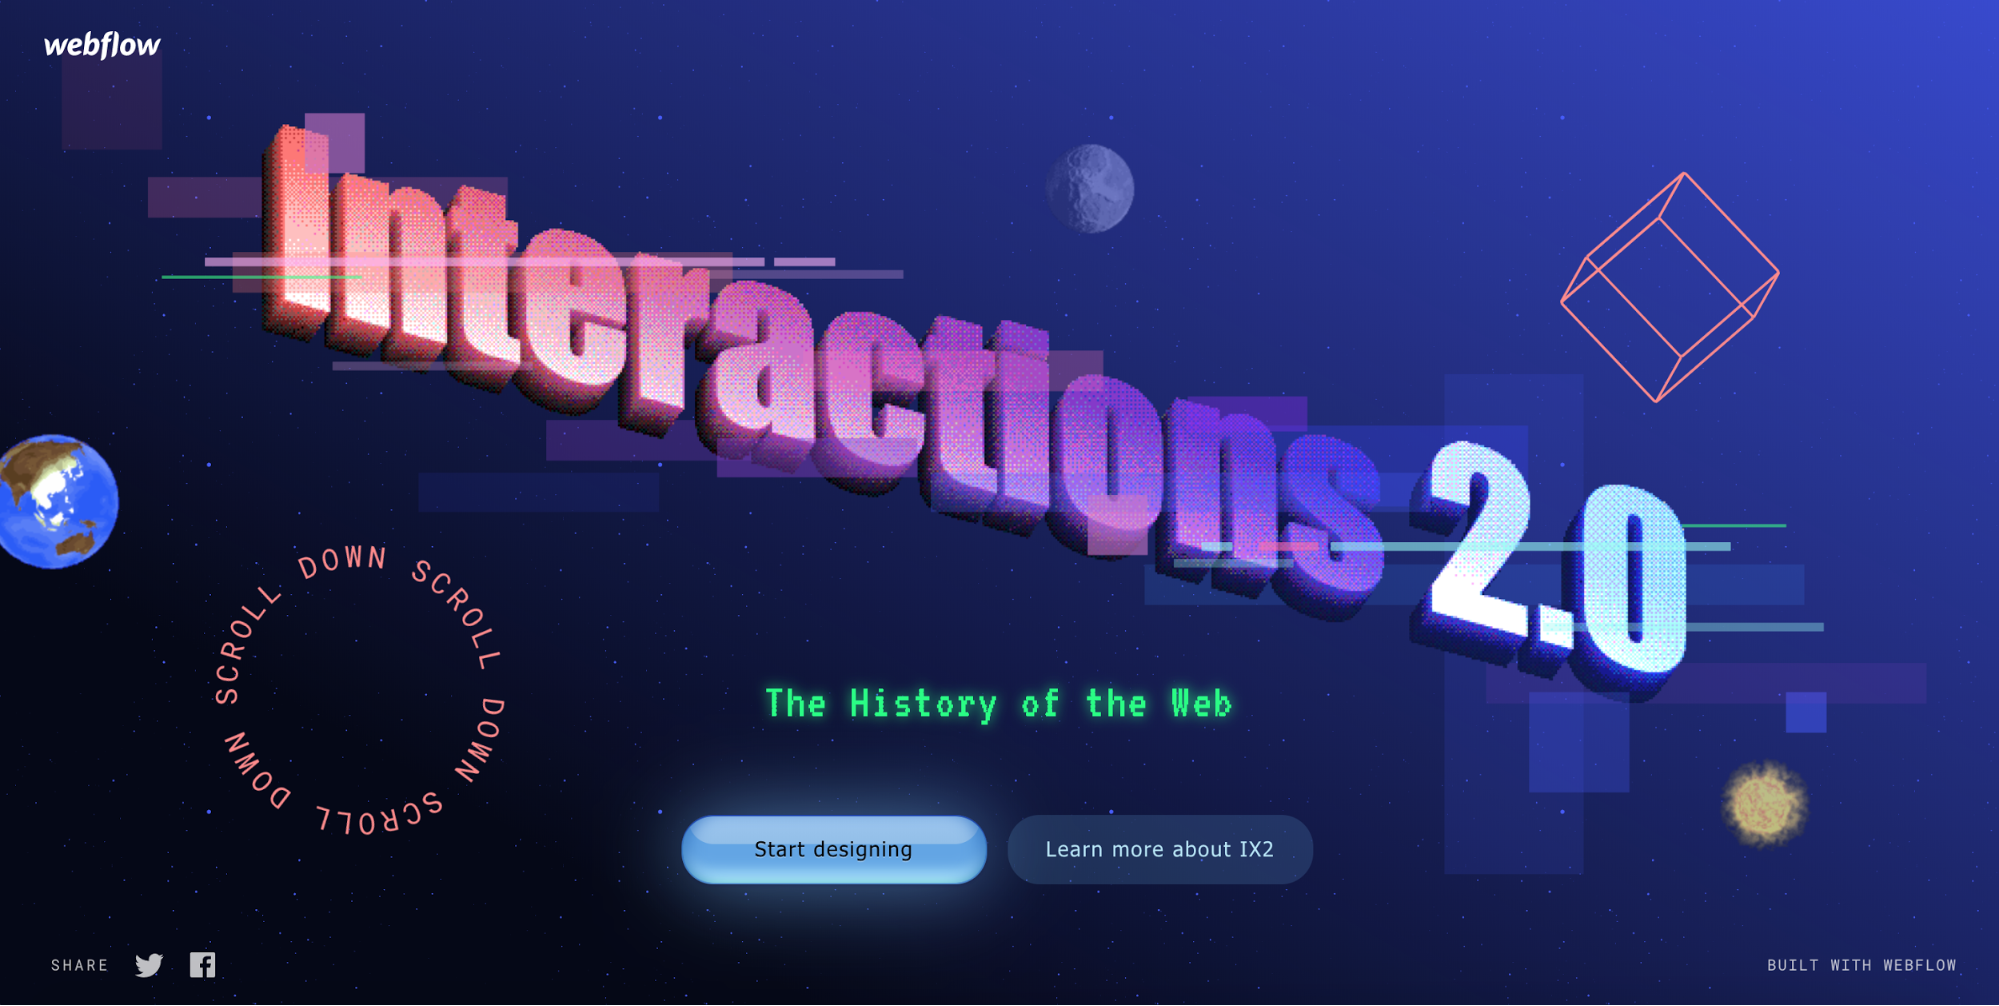 Interactions 2.0 history of the web